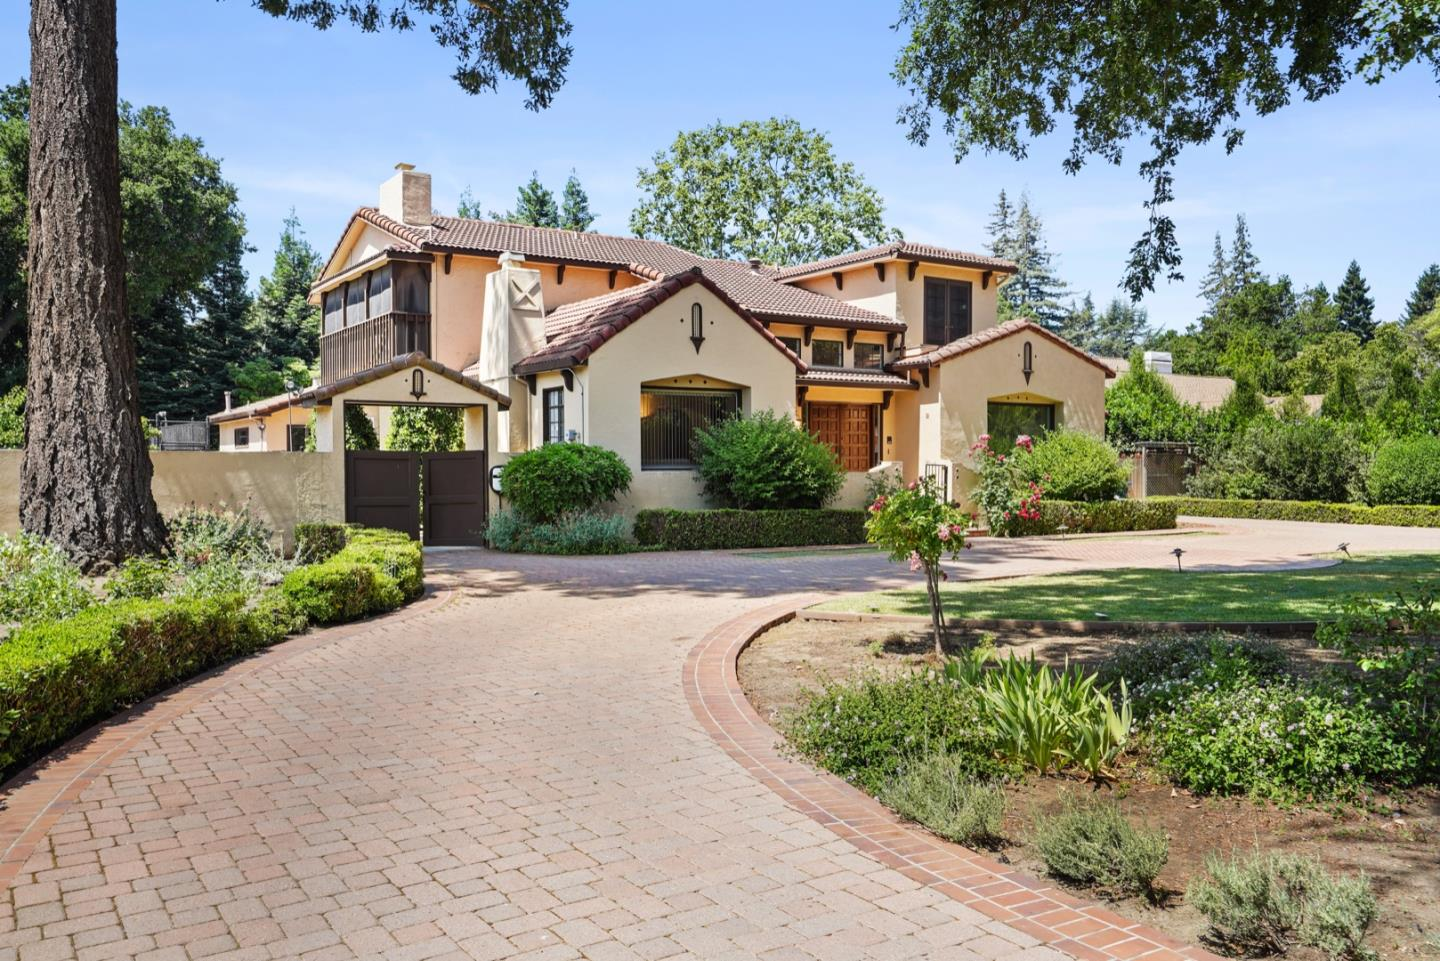 We are pleased to present this peaceful oasis on just under an acre of beautifully landscaped level land in the heart of coveted Central Atherton. On a quiet, tree-lined lane with double gated semicircular stone driveway, this imposing & updated 1928 Mediterranean family home emanates the feeling of resort living inside and out with every detail. Enjoy summer fun with a sparkling pool & games on the sport court. Main House is 3,805 sqft with 5 bedrooms & 4 full baths PLUS a 1,200 sqft detached 1 bed, 1 bath, self-contained ADU. Total 5,000 sq ft (+/-) of living space. Media and exercise rooms. Four car garage. Tesla/EV ready.  Solar fully owned. All wiring including data fiber underground. Lawned yard and gardens with mature fruit trees & foliage. Close to Silicon Valley and top schools, including Stanford University, Amador is in the perfect location for education, business, shopping and dining. We look forward to showing you the Best Value in Central Atherton. www.50amadoravenue.com